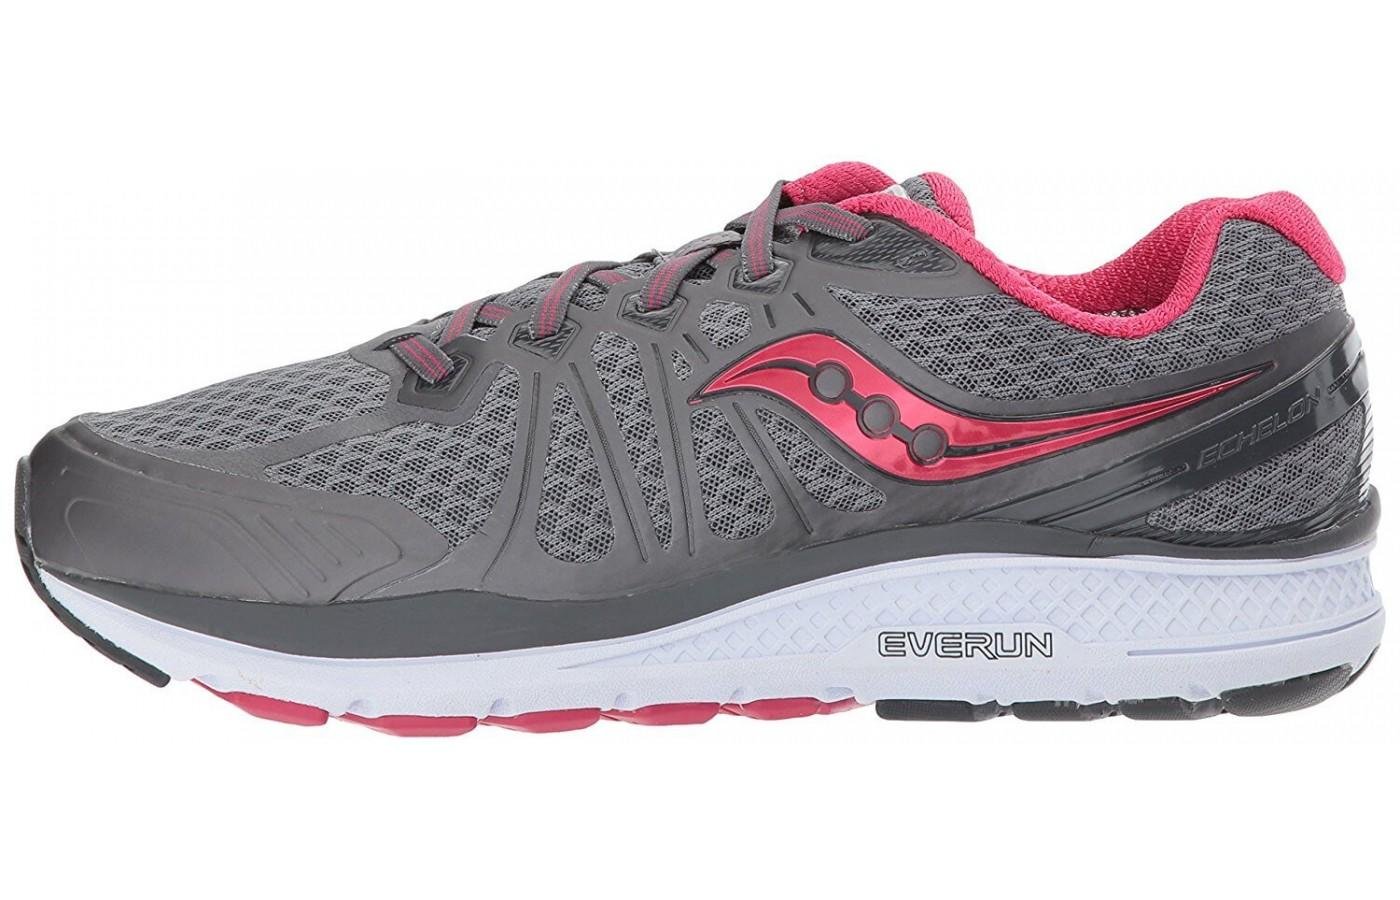 The Saucony Echelon 6 uses a Foundation Platform for high volume feet, such as runners and people who need medical orthotics